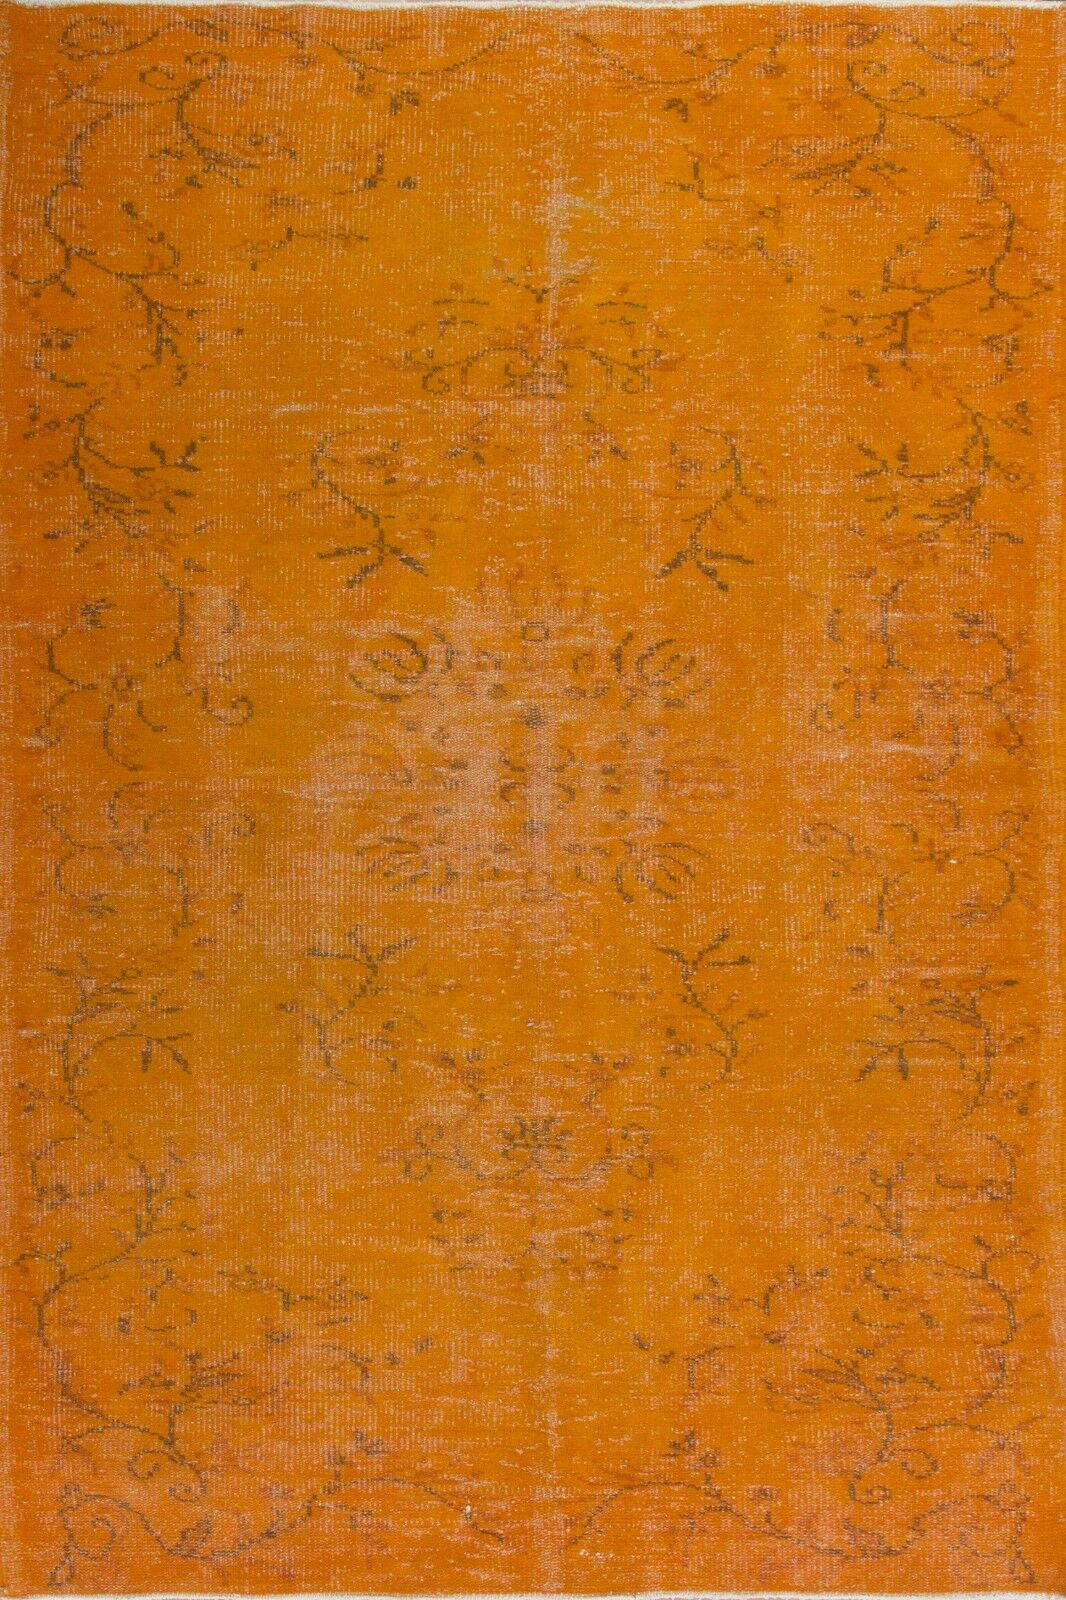 4.3 X8 ft (130x240 Cm) Color Naranja Overdyed Vintage Hecho A Mano Turca Alfombra C36